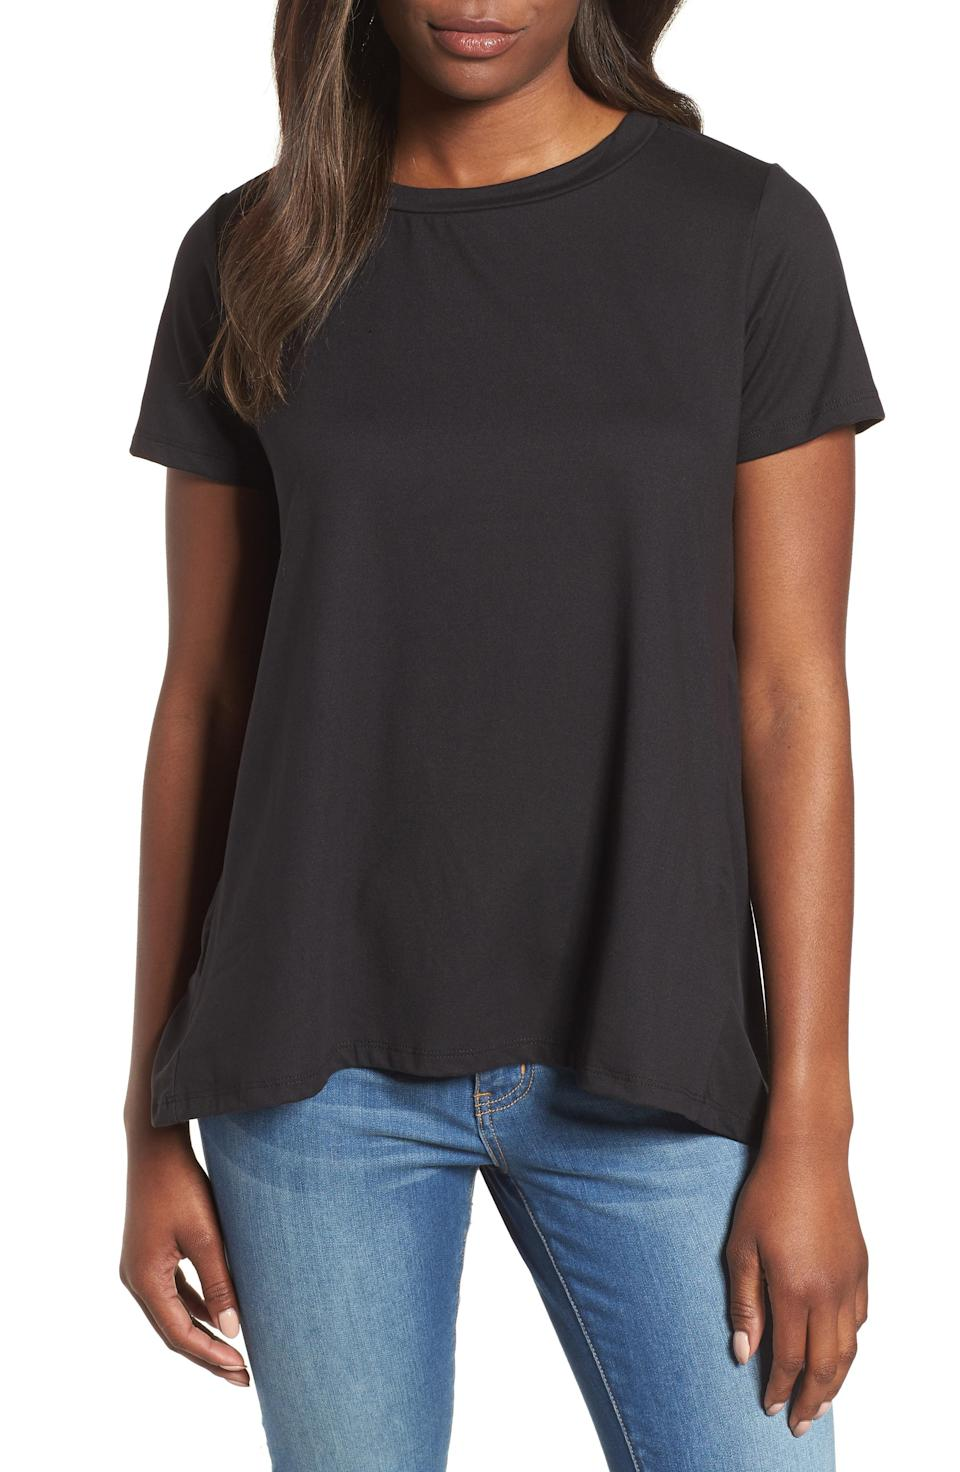 """<strong>The Flowy Tee</strong><br><br>As an update to a standard black T-shirt, this style features an asymmetrical hem and a billowy back for a flattering, non-clingy fit.<br><br><strong>The Hype:</strong> 4.9 out of 5 stars on Nordstrom<br><br><strong>What They're Saying:</strong> """"I'm always looking for T shirts that have a little more than your standard T. The detail on the back and the asymmetrical hem give this shirt a little more flattering shape. Not to mention, it is SO soft. Definitely buy it!"""" - Katherine203, Nordstrom Review<br><br><strong>Bobeau</strong> Butter Short Sleeve Tee, $, available at <a href=""""https://go.skimresources.com/?id=30283X879131&url=https%3A%2F%2Fshop.nordstrom.com%2Fs%2Fbobeau-butter-short-sleeve-tee-regular-petite%2F4983334"""" rel=""""nofollow noopener"""" target=""""_blank"""" data-ylk=""""slk:Nordstrom"""" class=""""link rapid-noclick-resp"""">Nordstrom</a>"""